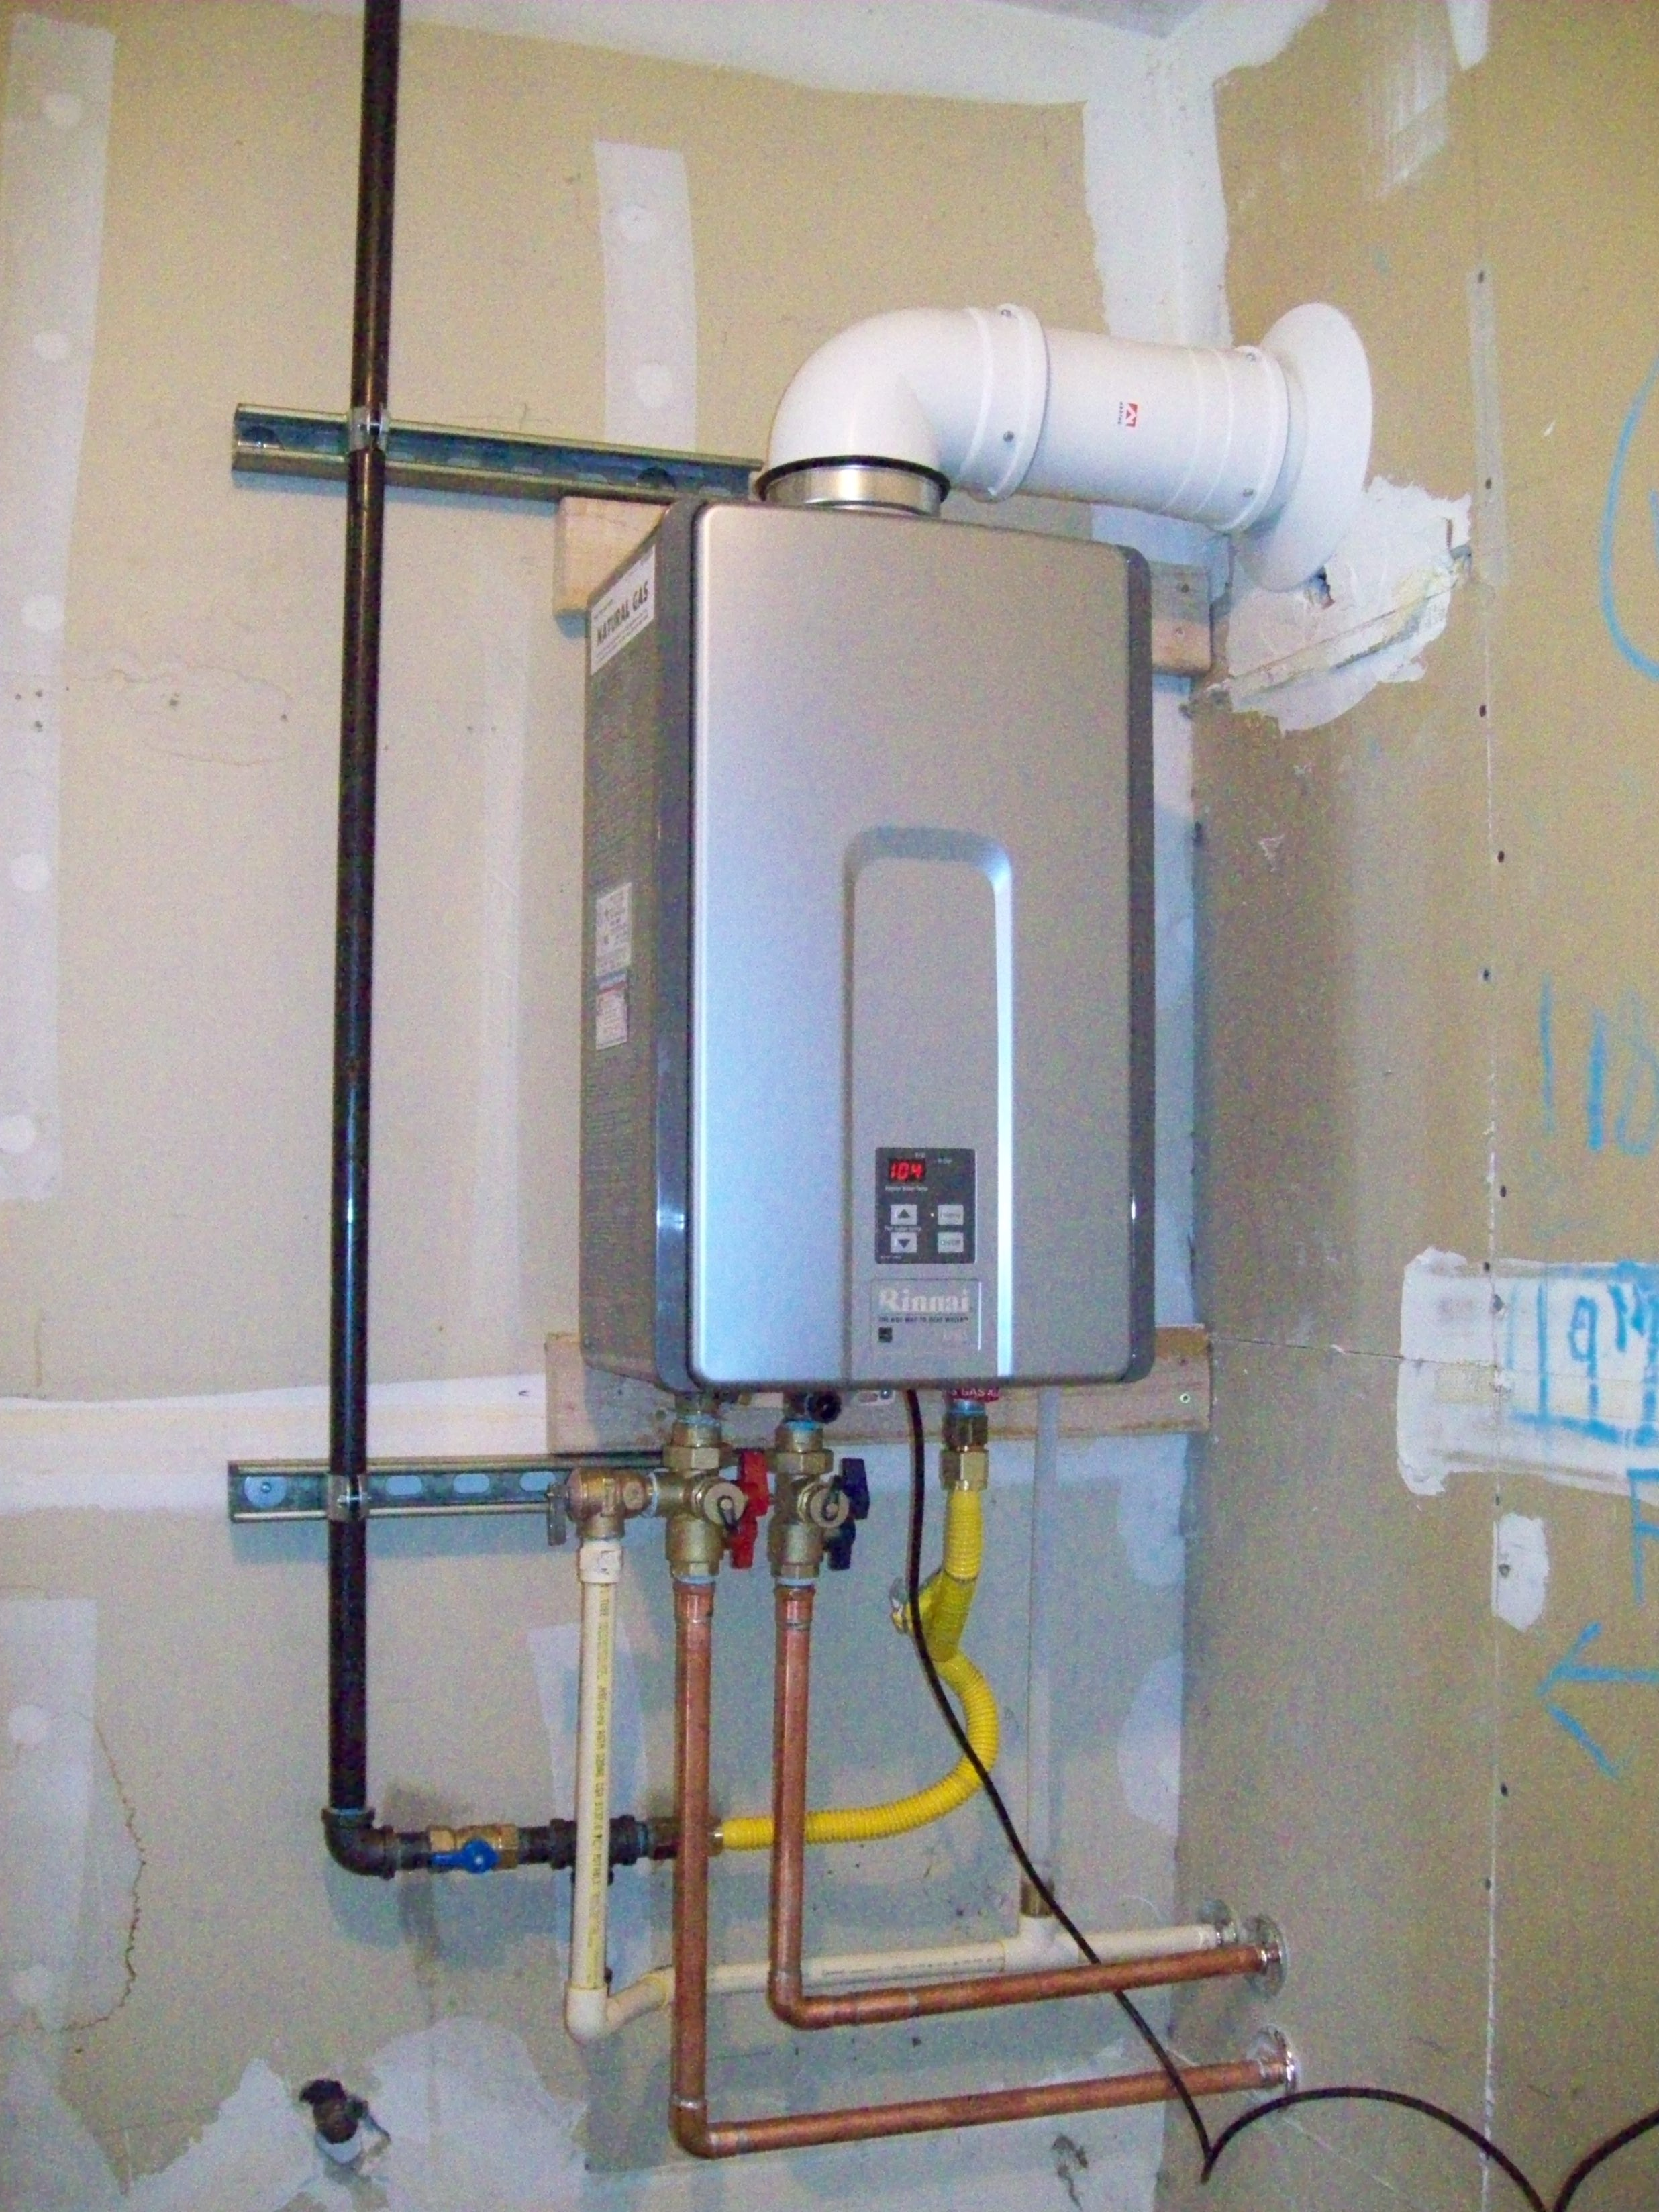 Wiring Diagram Tankless Water Heater : Tankless water heater advantages for your consideration